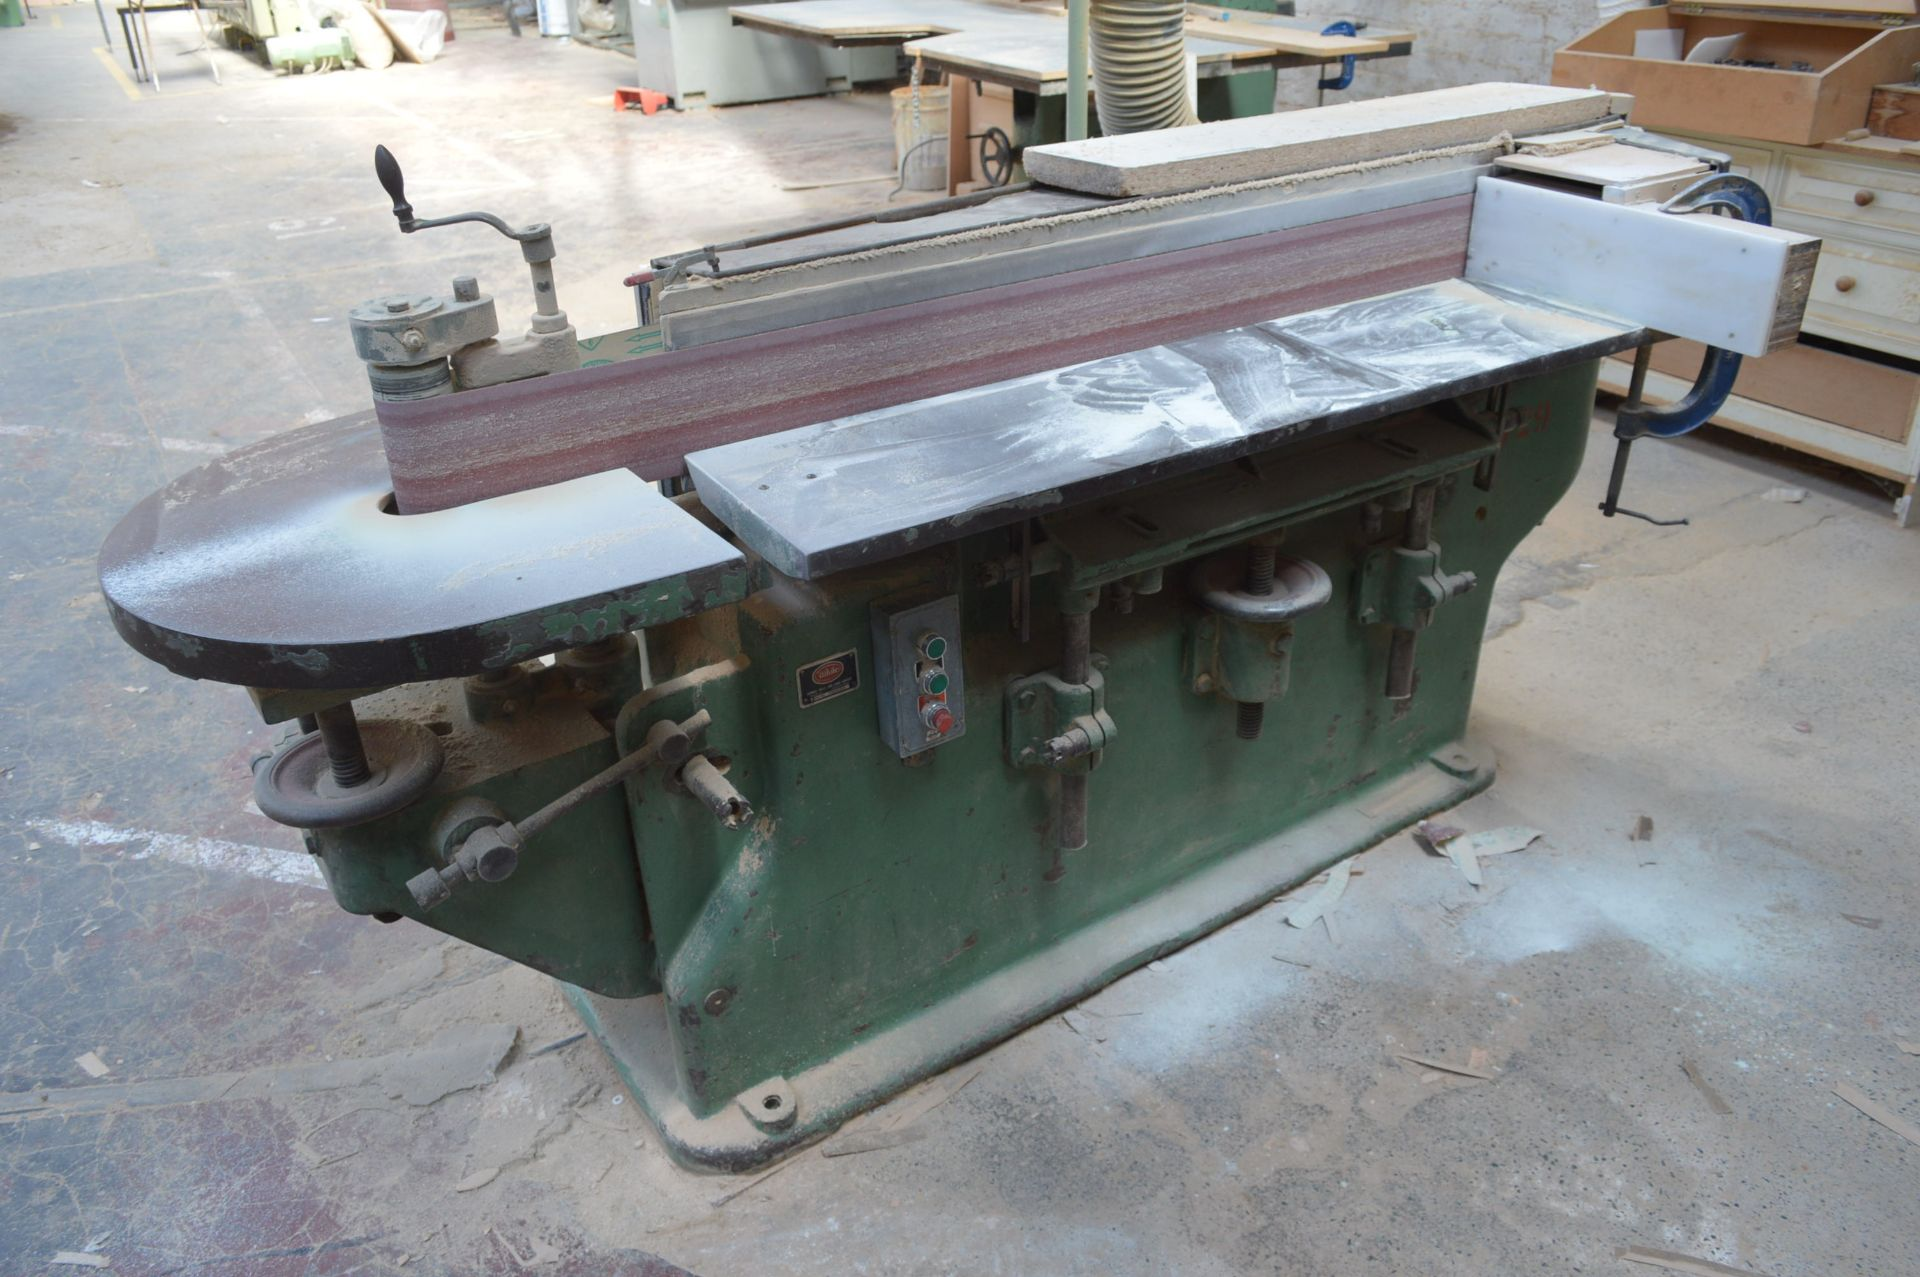 Lot 19 - White EDGE SANDER, serial no. M46615R, with flexible dust extraction ducting